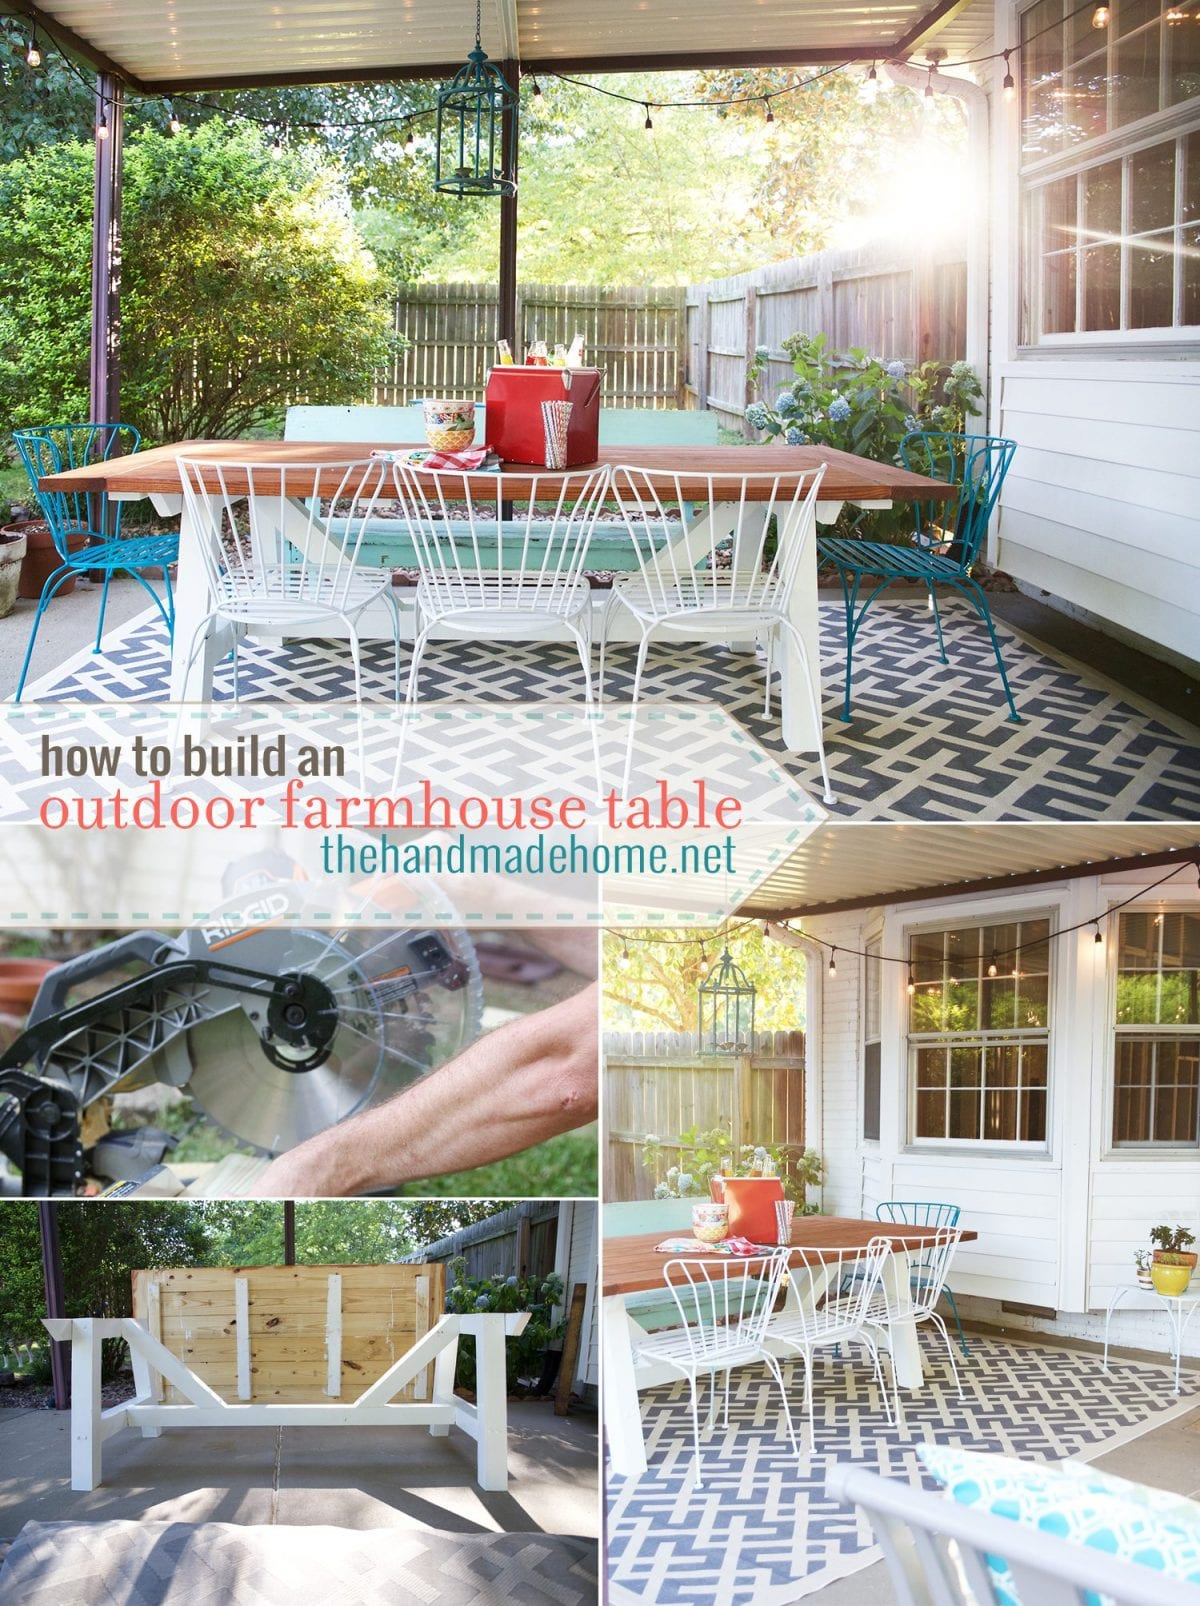 how_to_build_an_outdoor_farmhouse_table